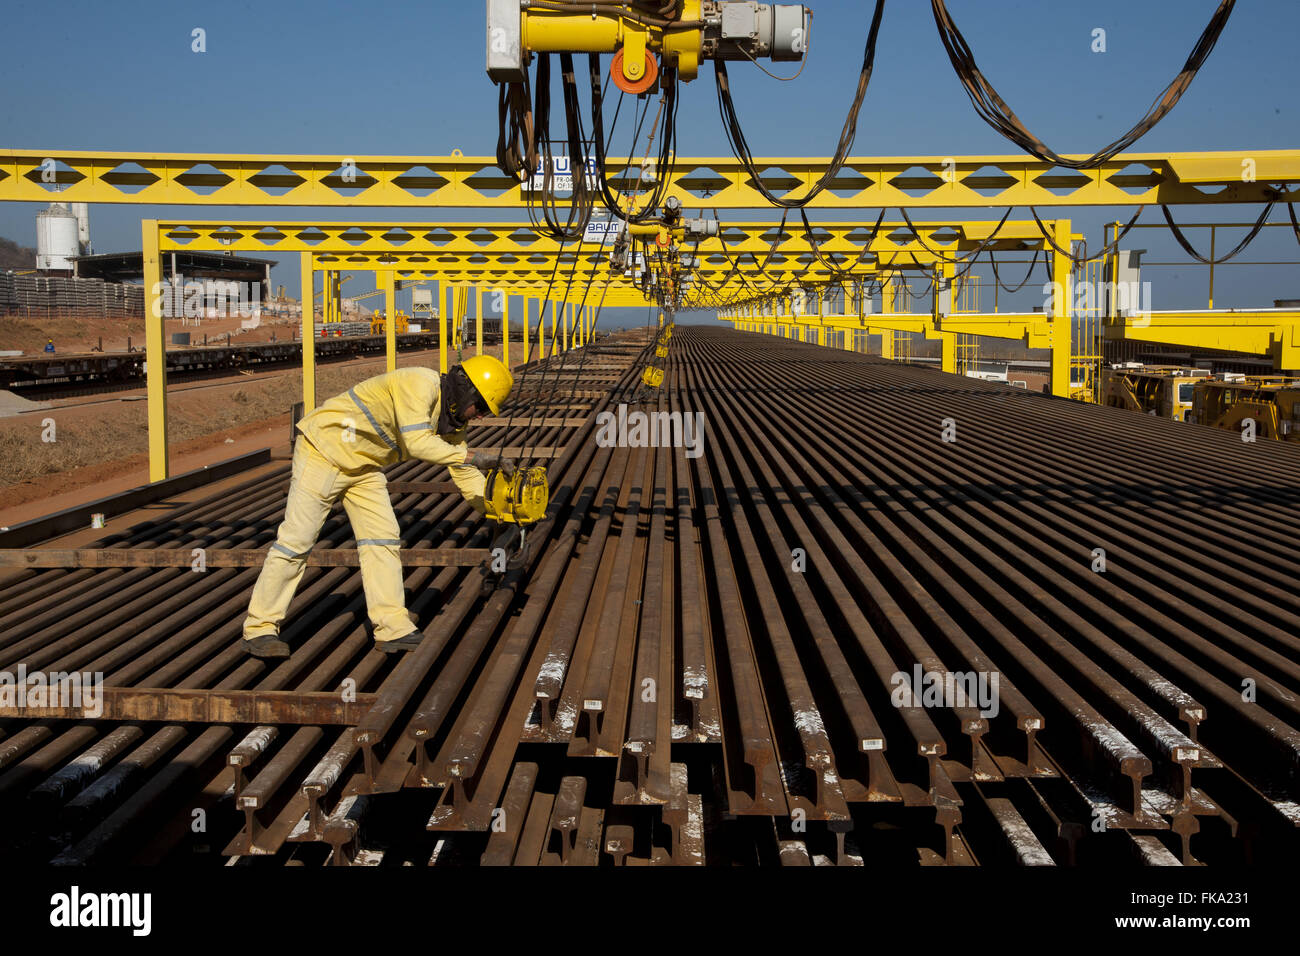 Patio rails for railway construction Transnordestina - Stock Image